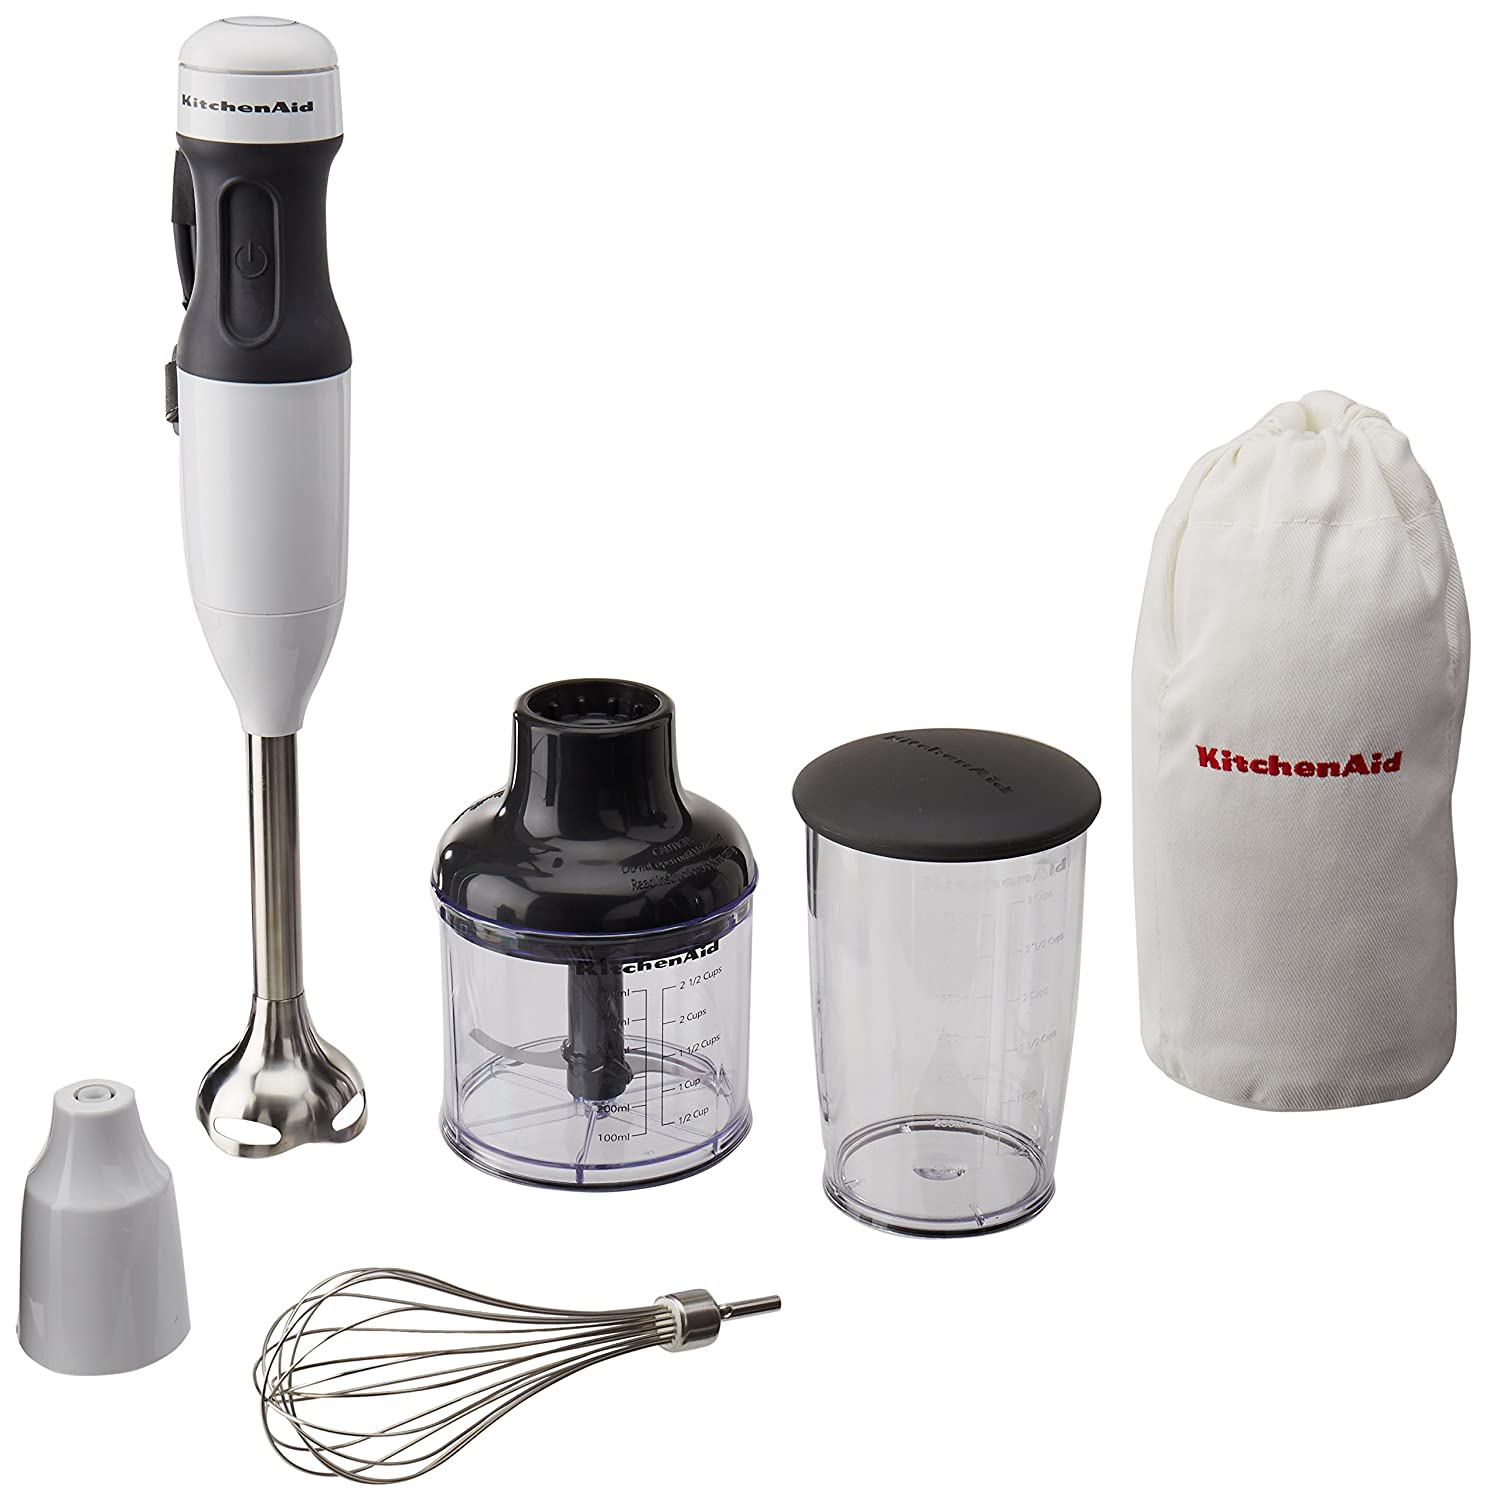 Kitchenaid Hand Blender Mixer White khb2351wh 3 Speed with Soft Grip Handle Blend, Puree,Crush, Chop and Whisk.…